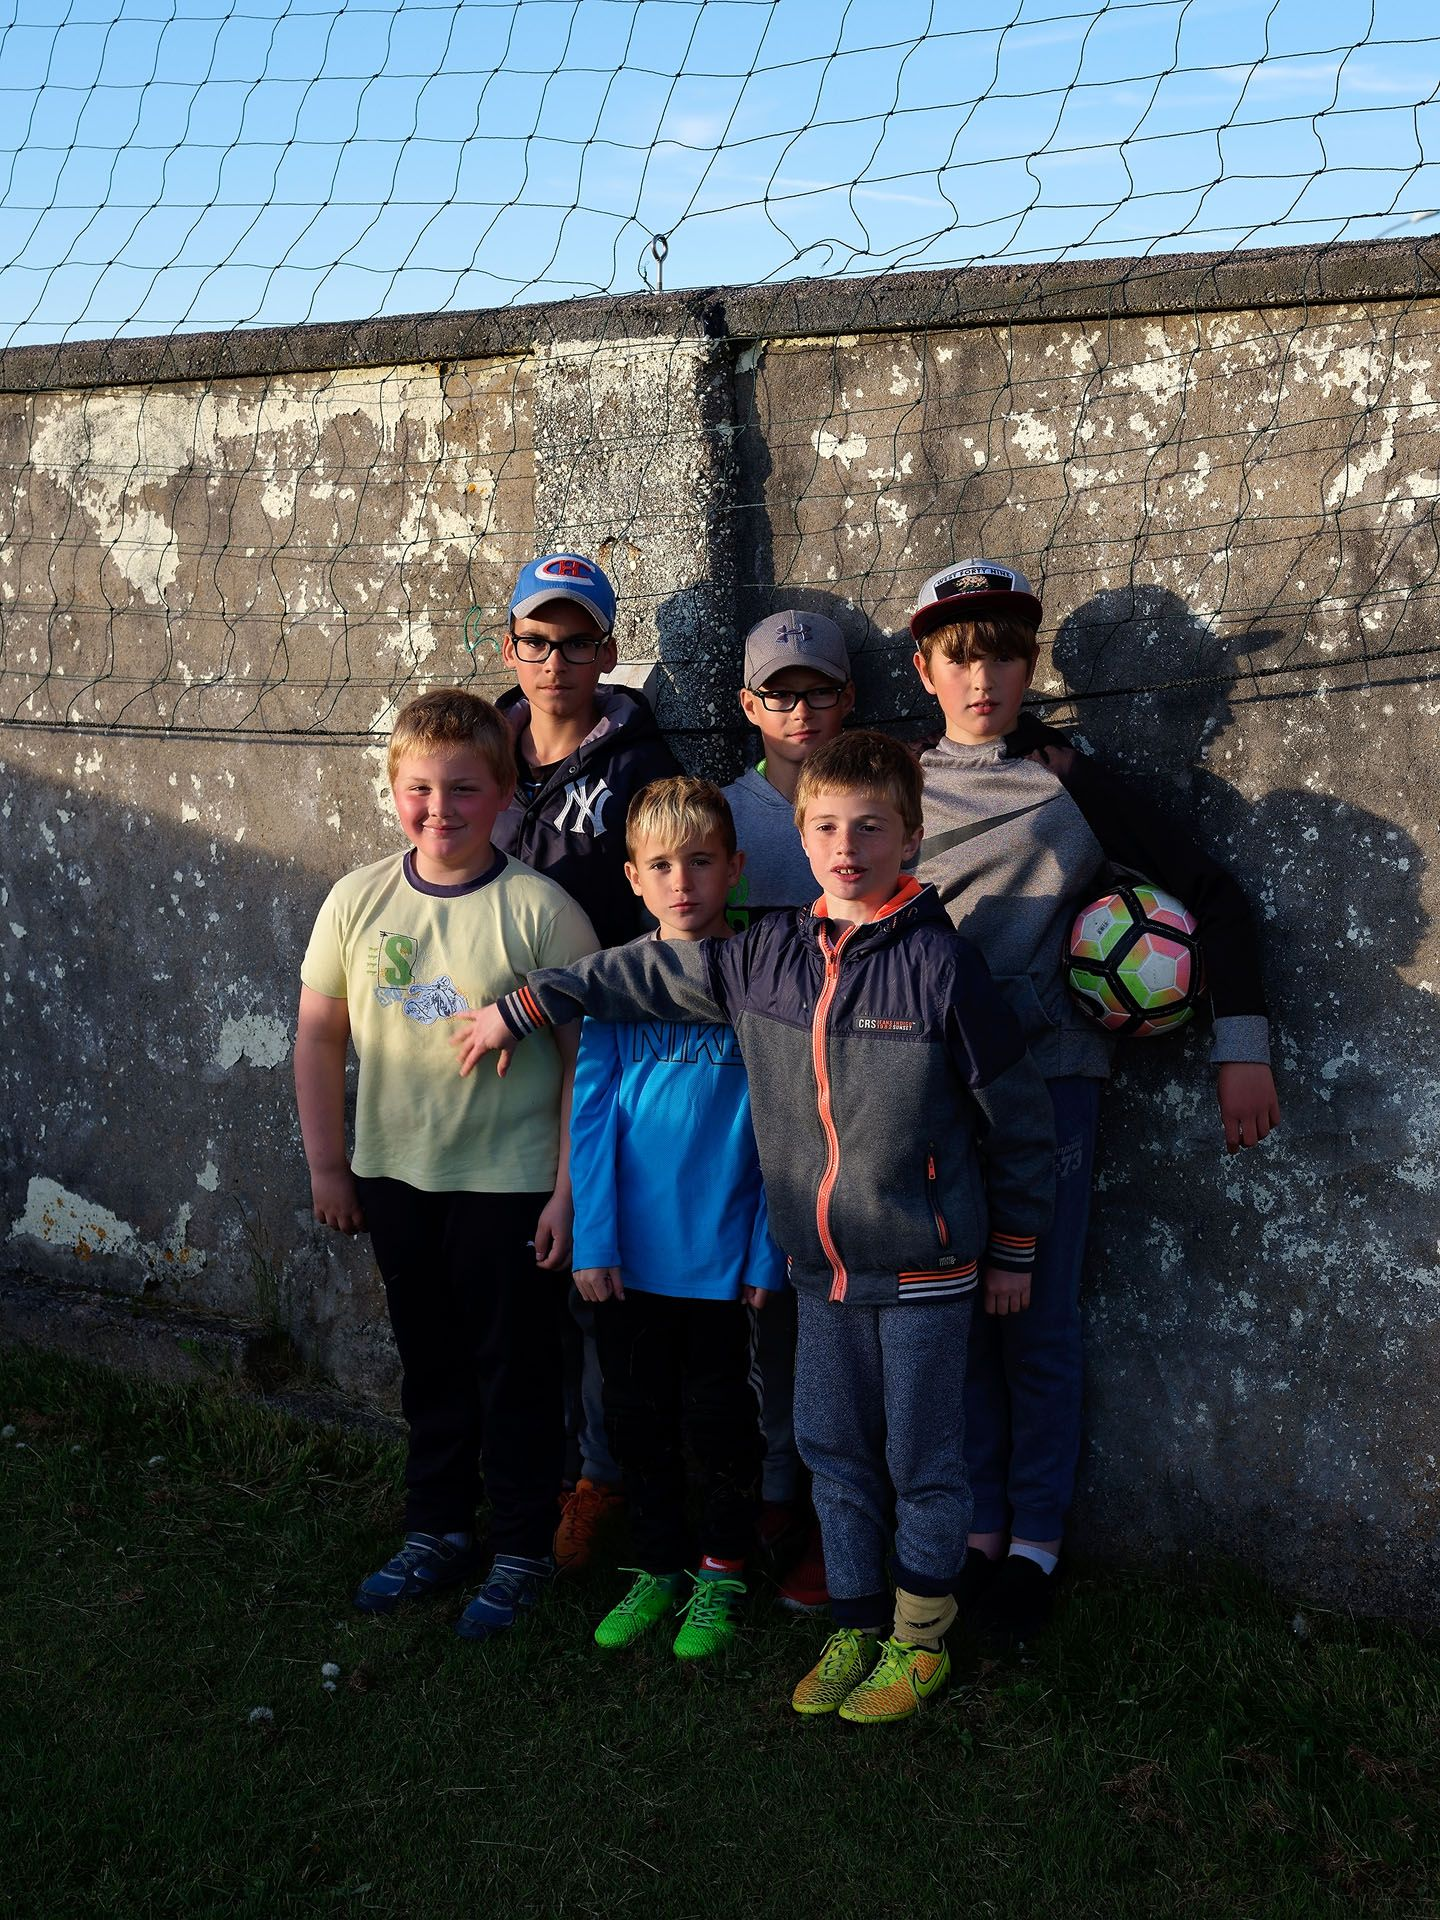 group of young kids posing against a wall with soccer ball by Guillaume Simoneau in Saint-Pierre-et-Miquelon for M le mag Le Monde